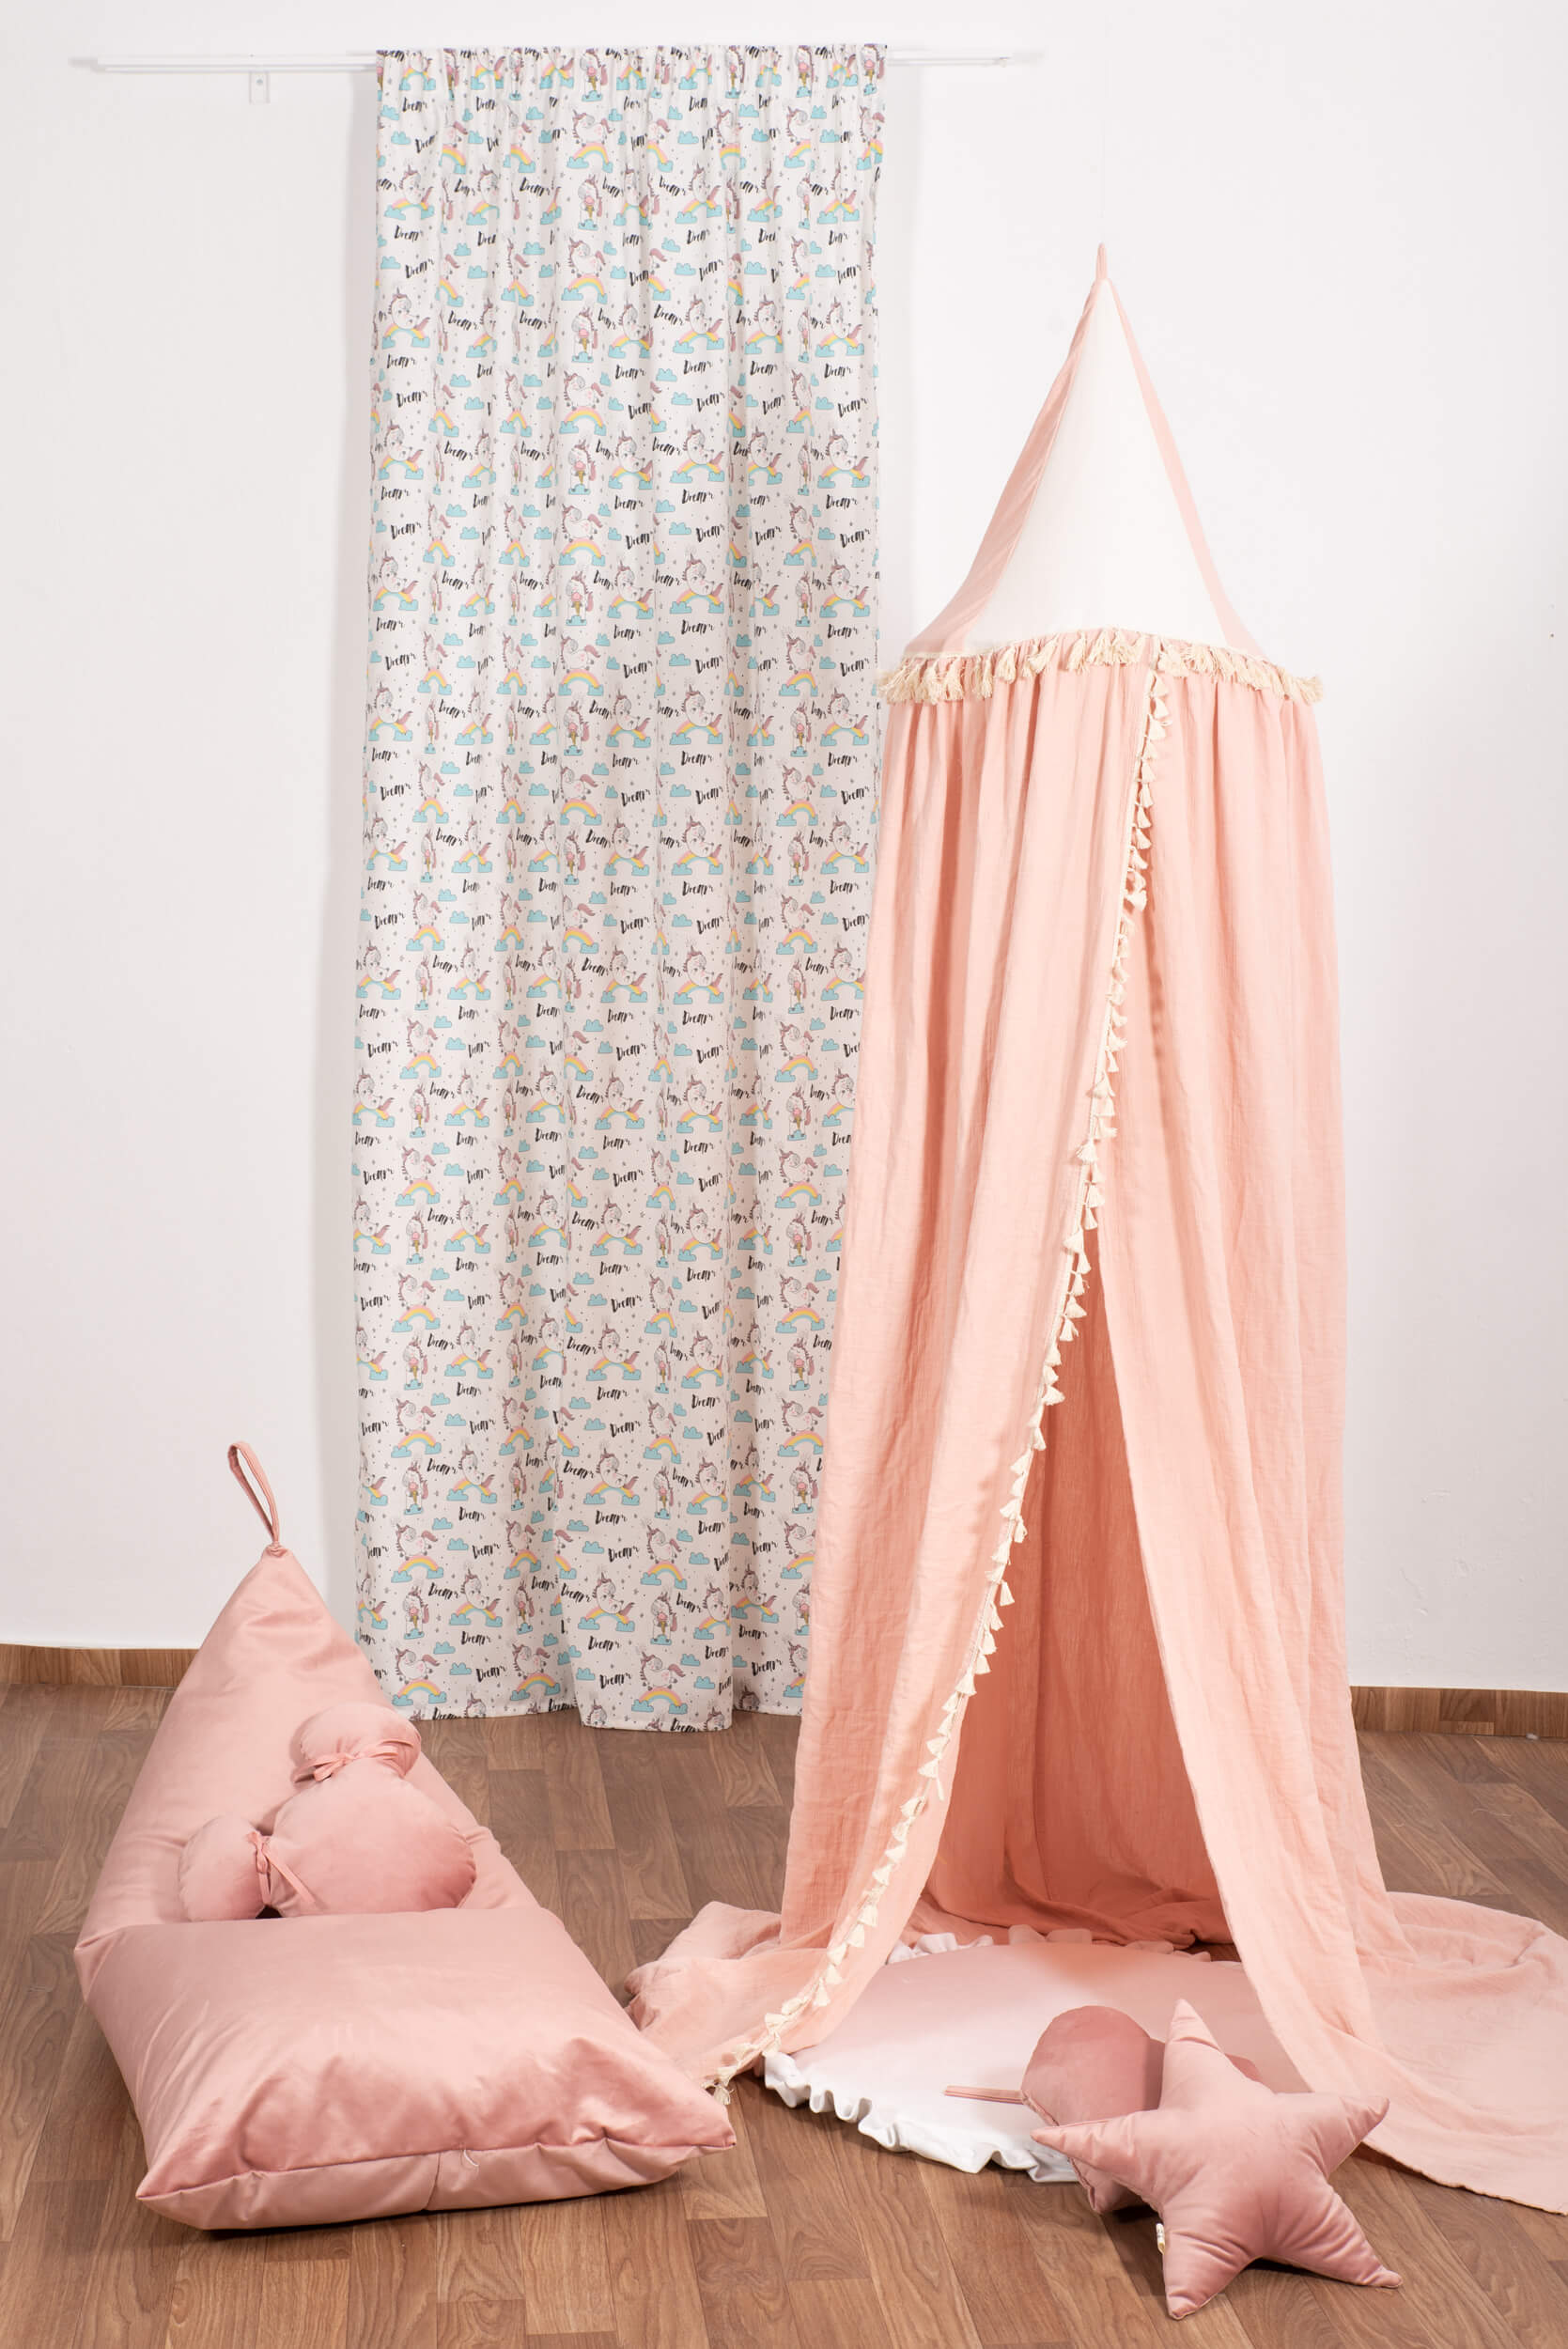 Soft tulle Canopy